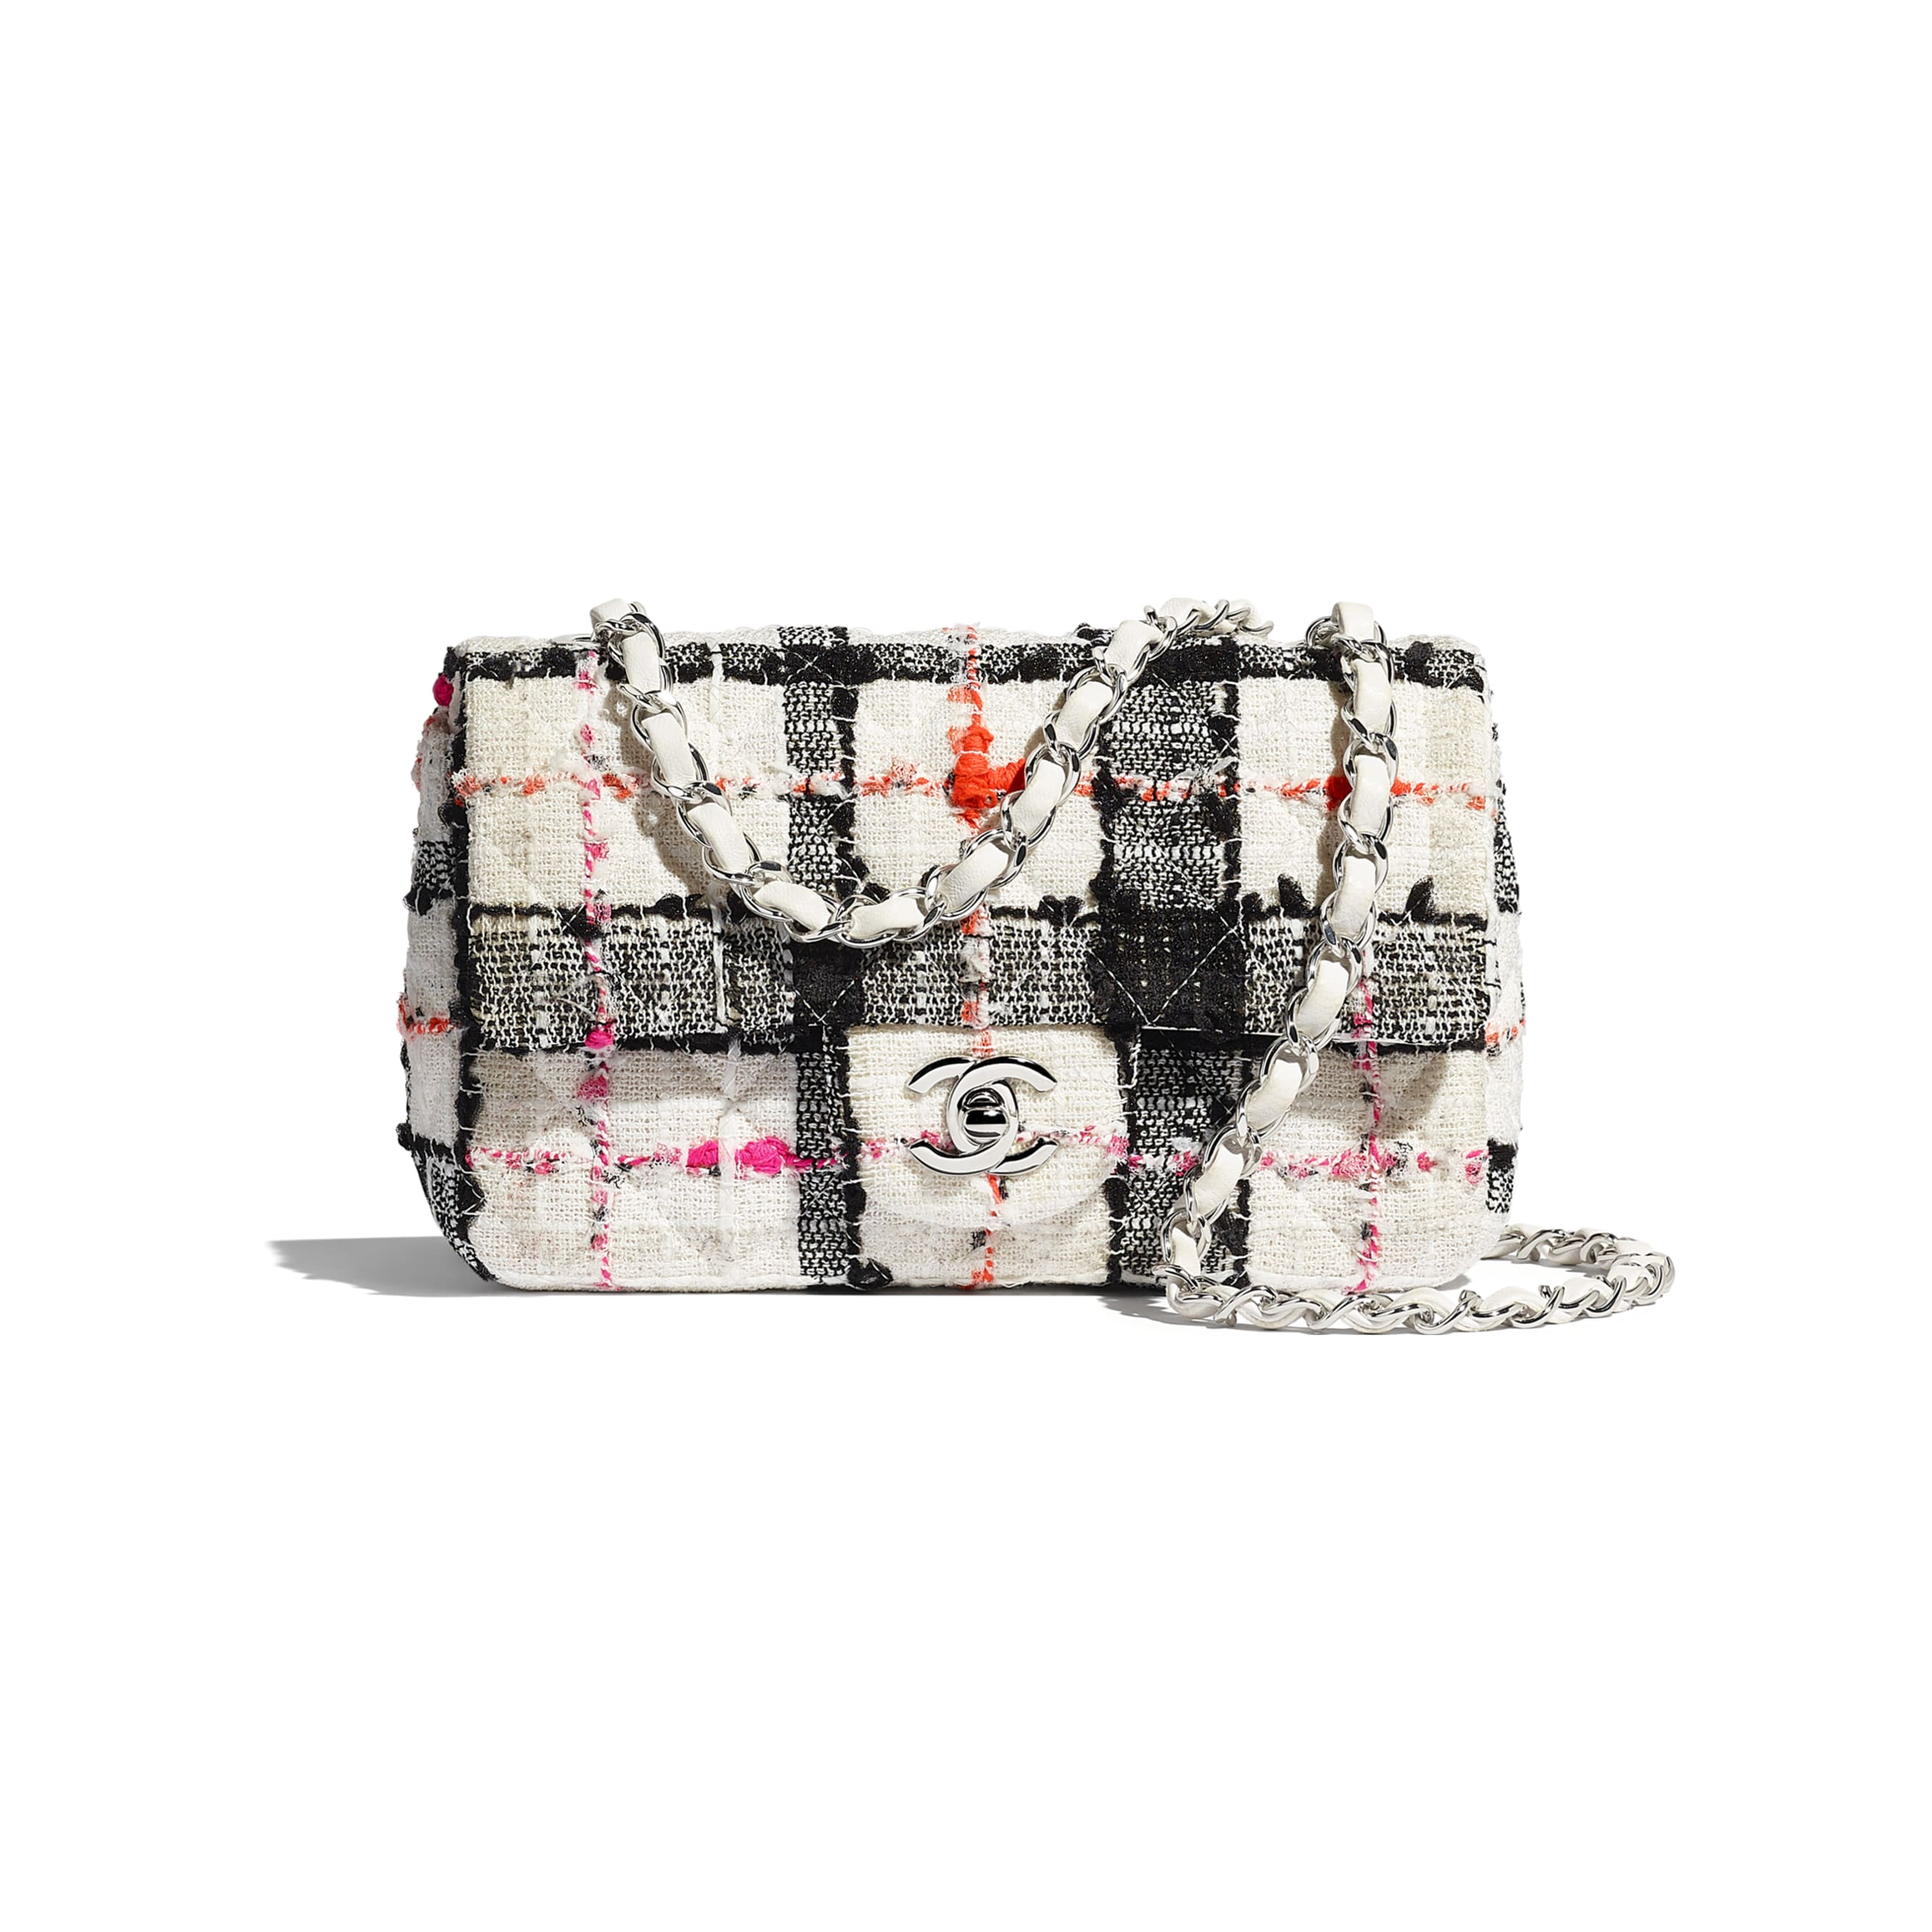 Mini Flap Bag - White, Black, Pink & Orange - Tweed & Silver-Tone Metal - Default view - see standard sized version